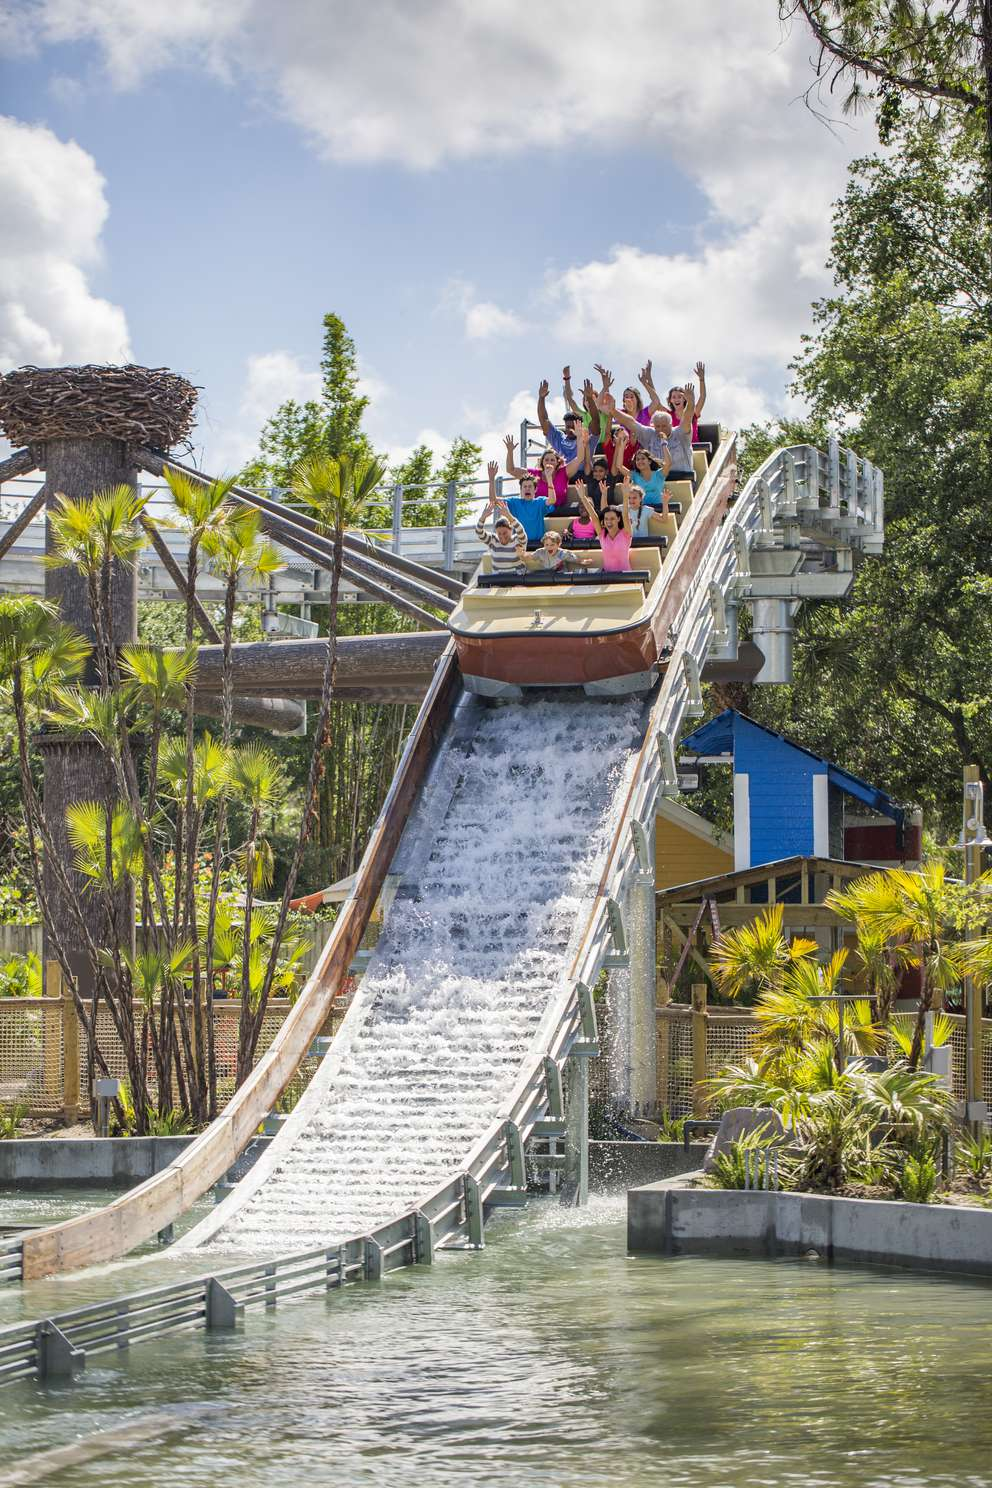 Roaring Springs is a ride and realm set up like an Old Florida town, with a new water raft ride, a food stand, play ground. Photo courtesy of ZooTampa